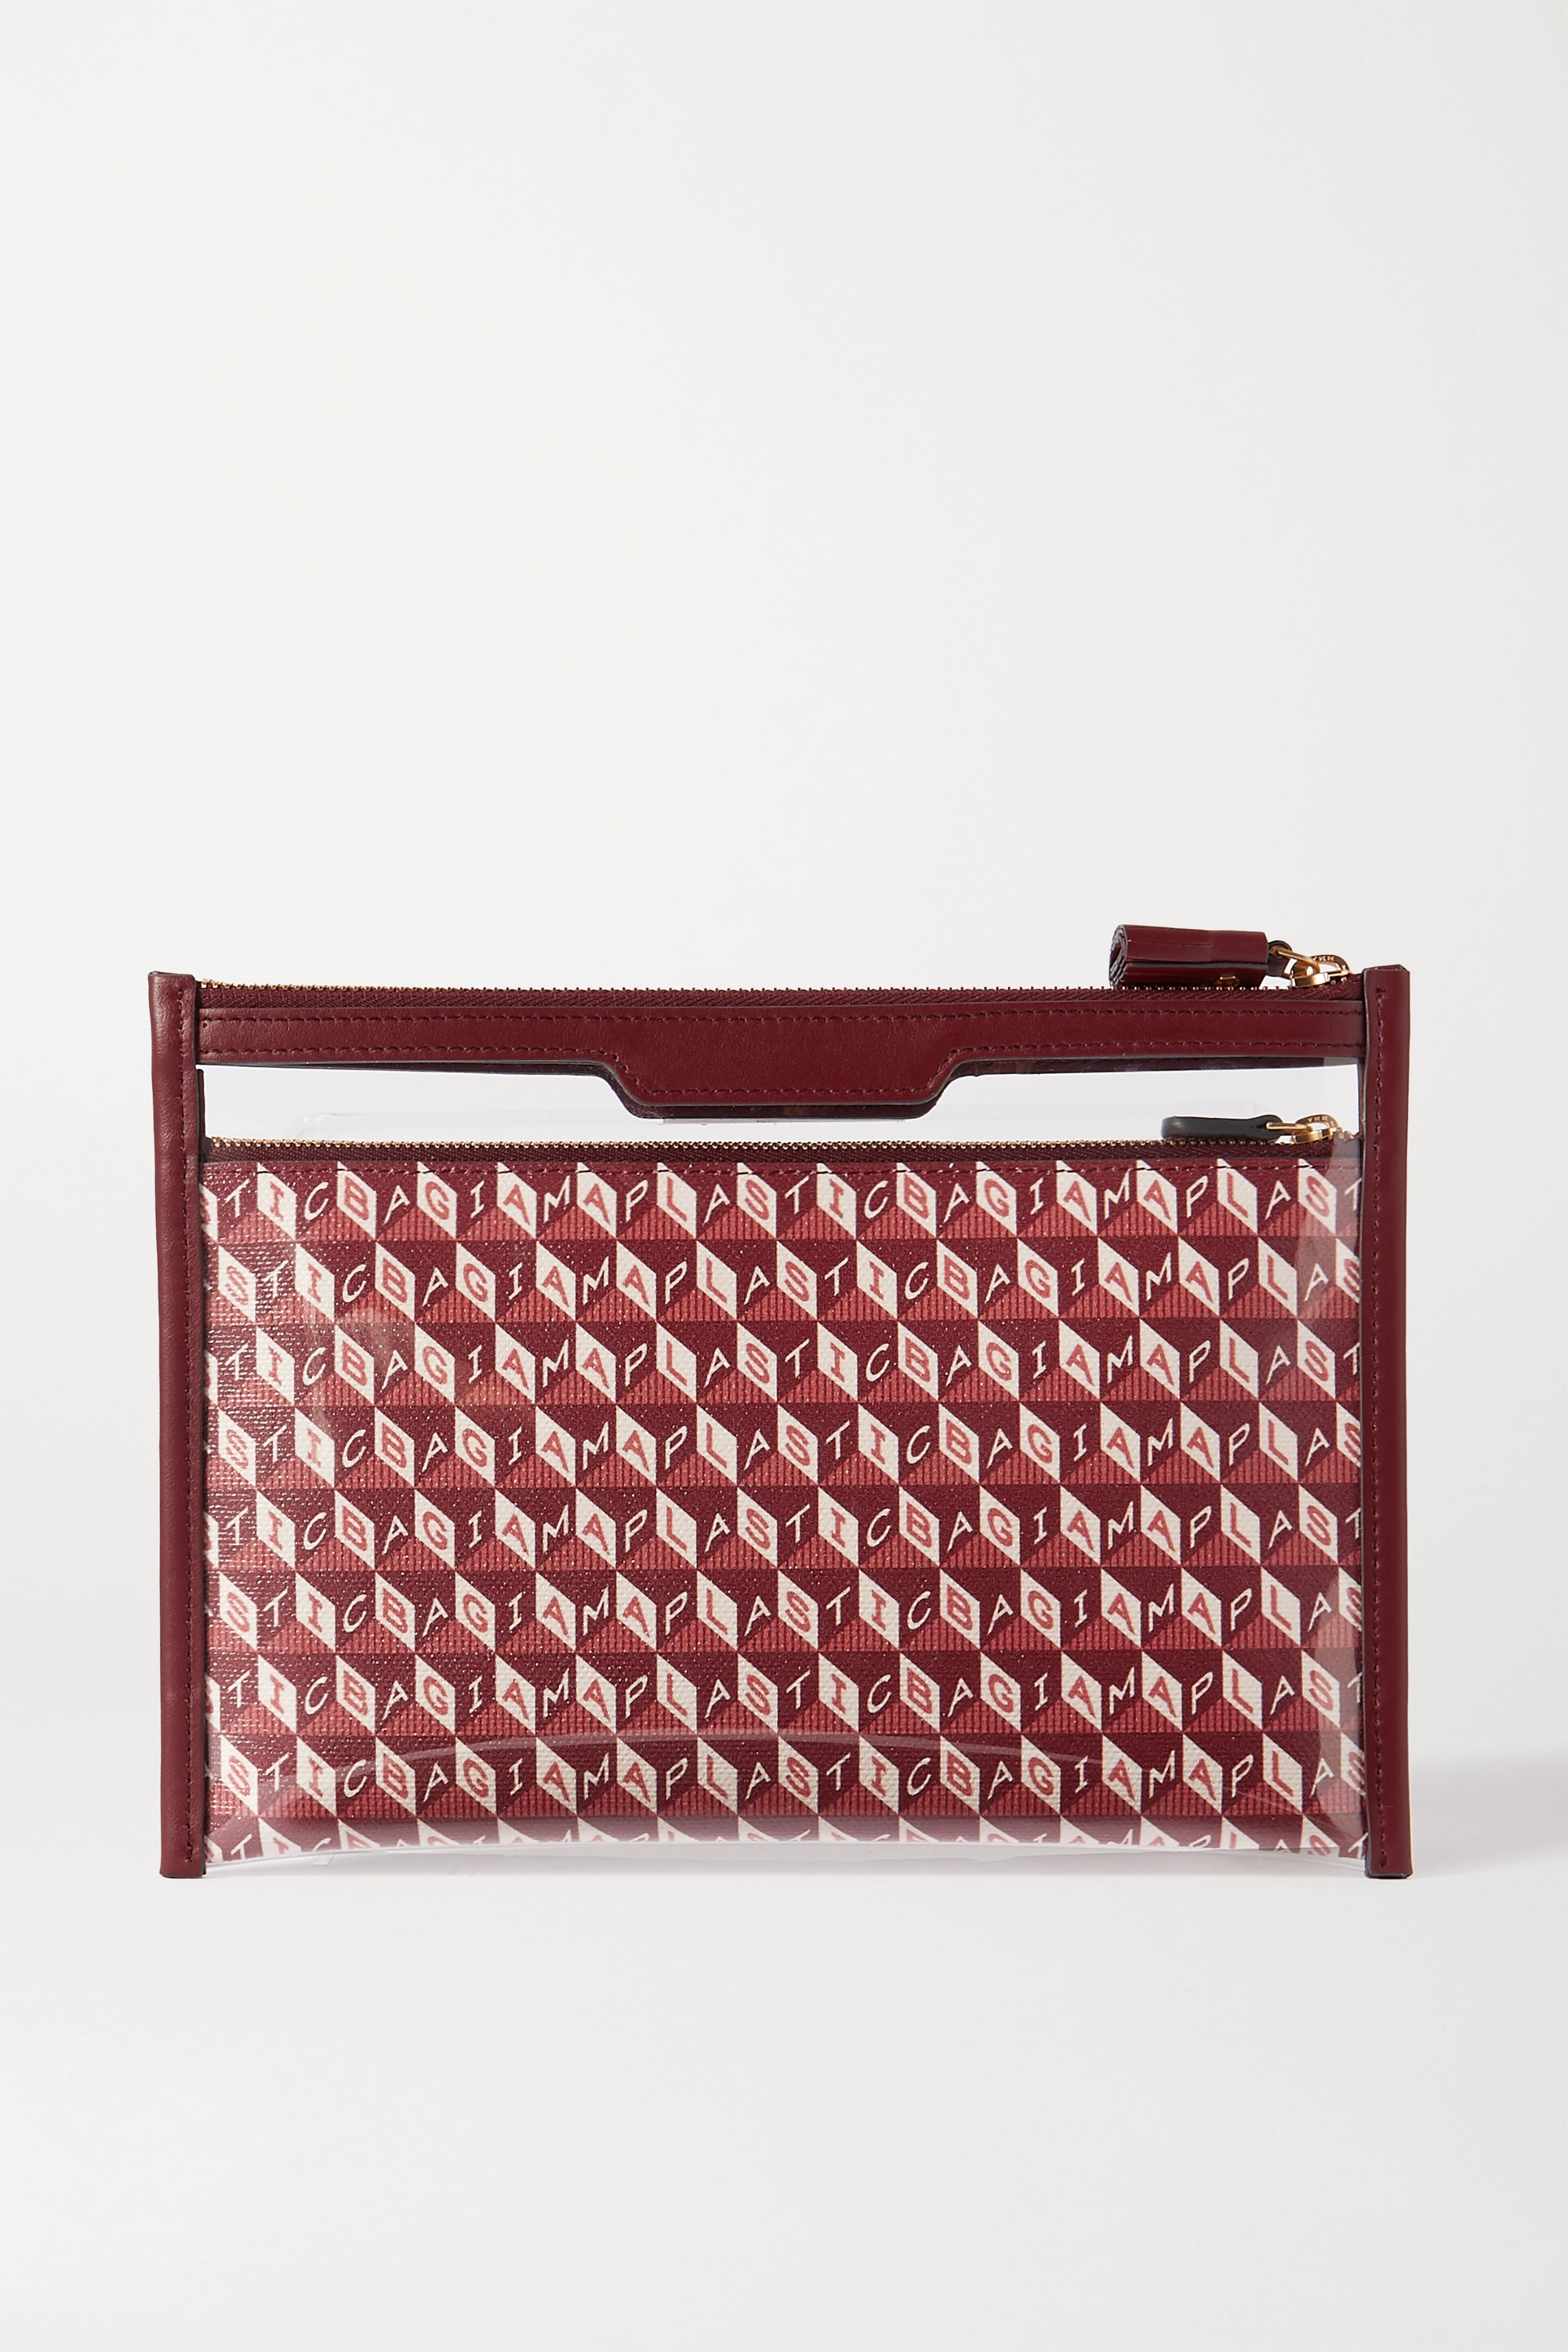 Anya Hindmarch Safety Deposit leather-trimmed printed coated-canvas and PVC pouch